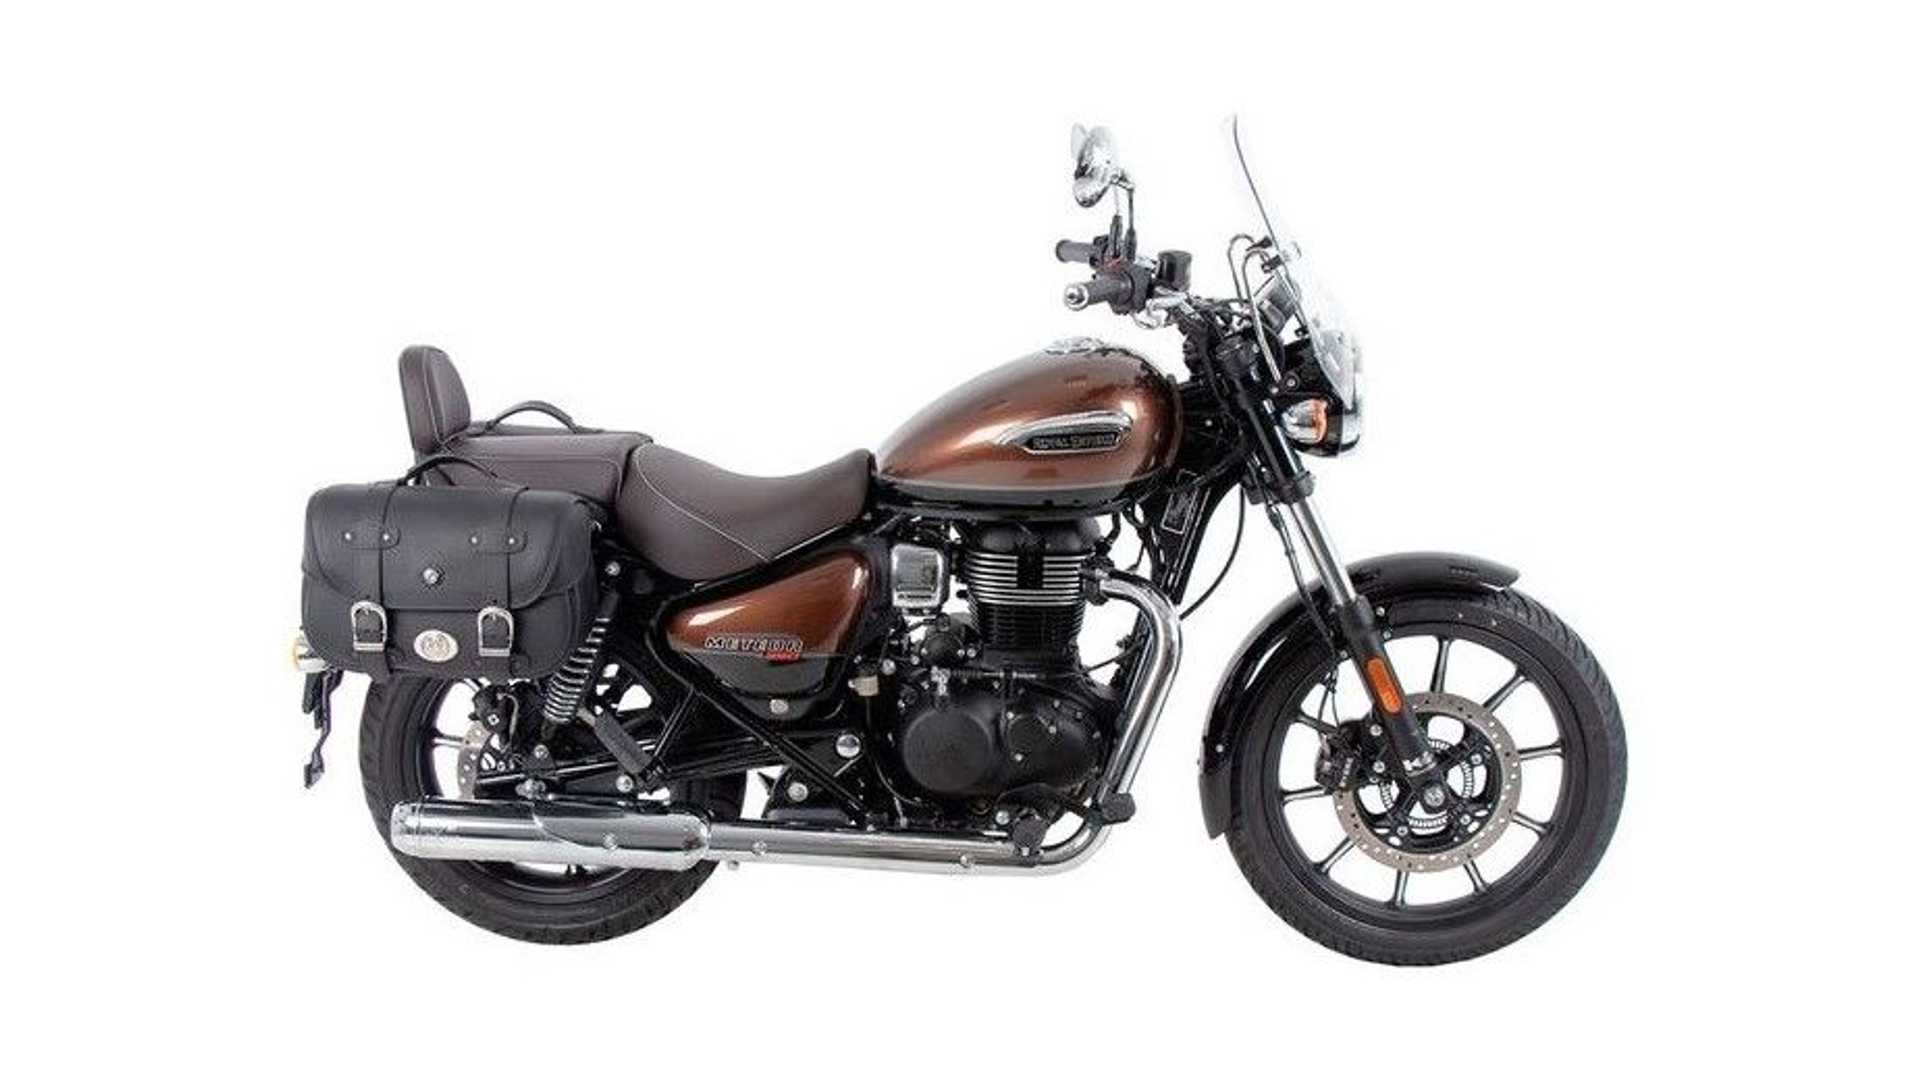 Hepco & Becker Luggage: Royal Enfield Meteor 350 - Leather